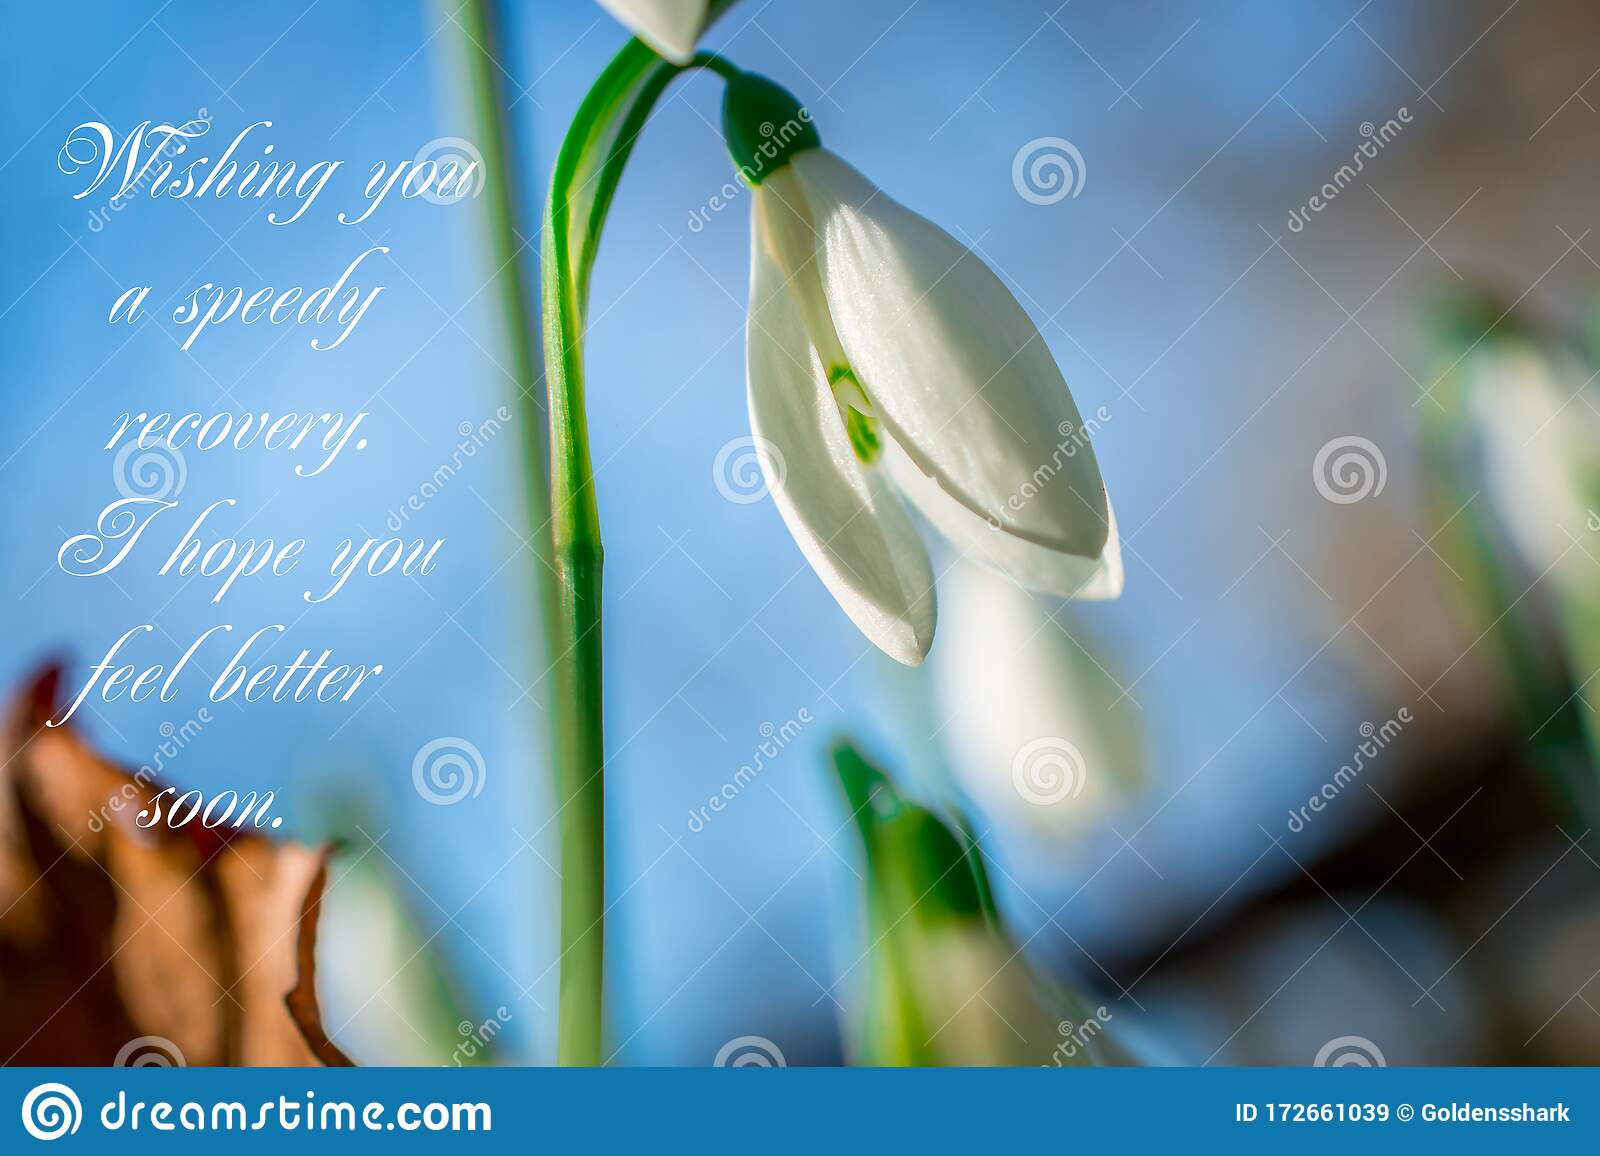 Get Well Soon White Flowers With Text Feel Better Soon